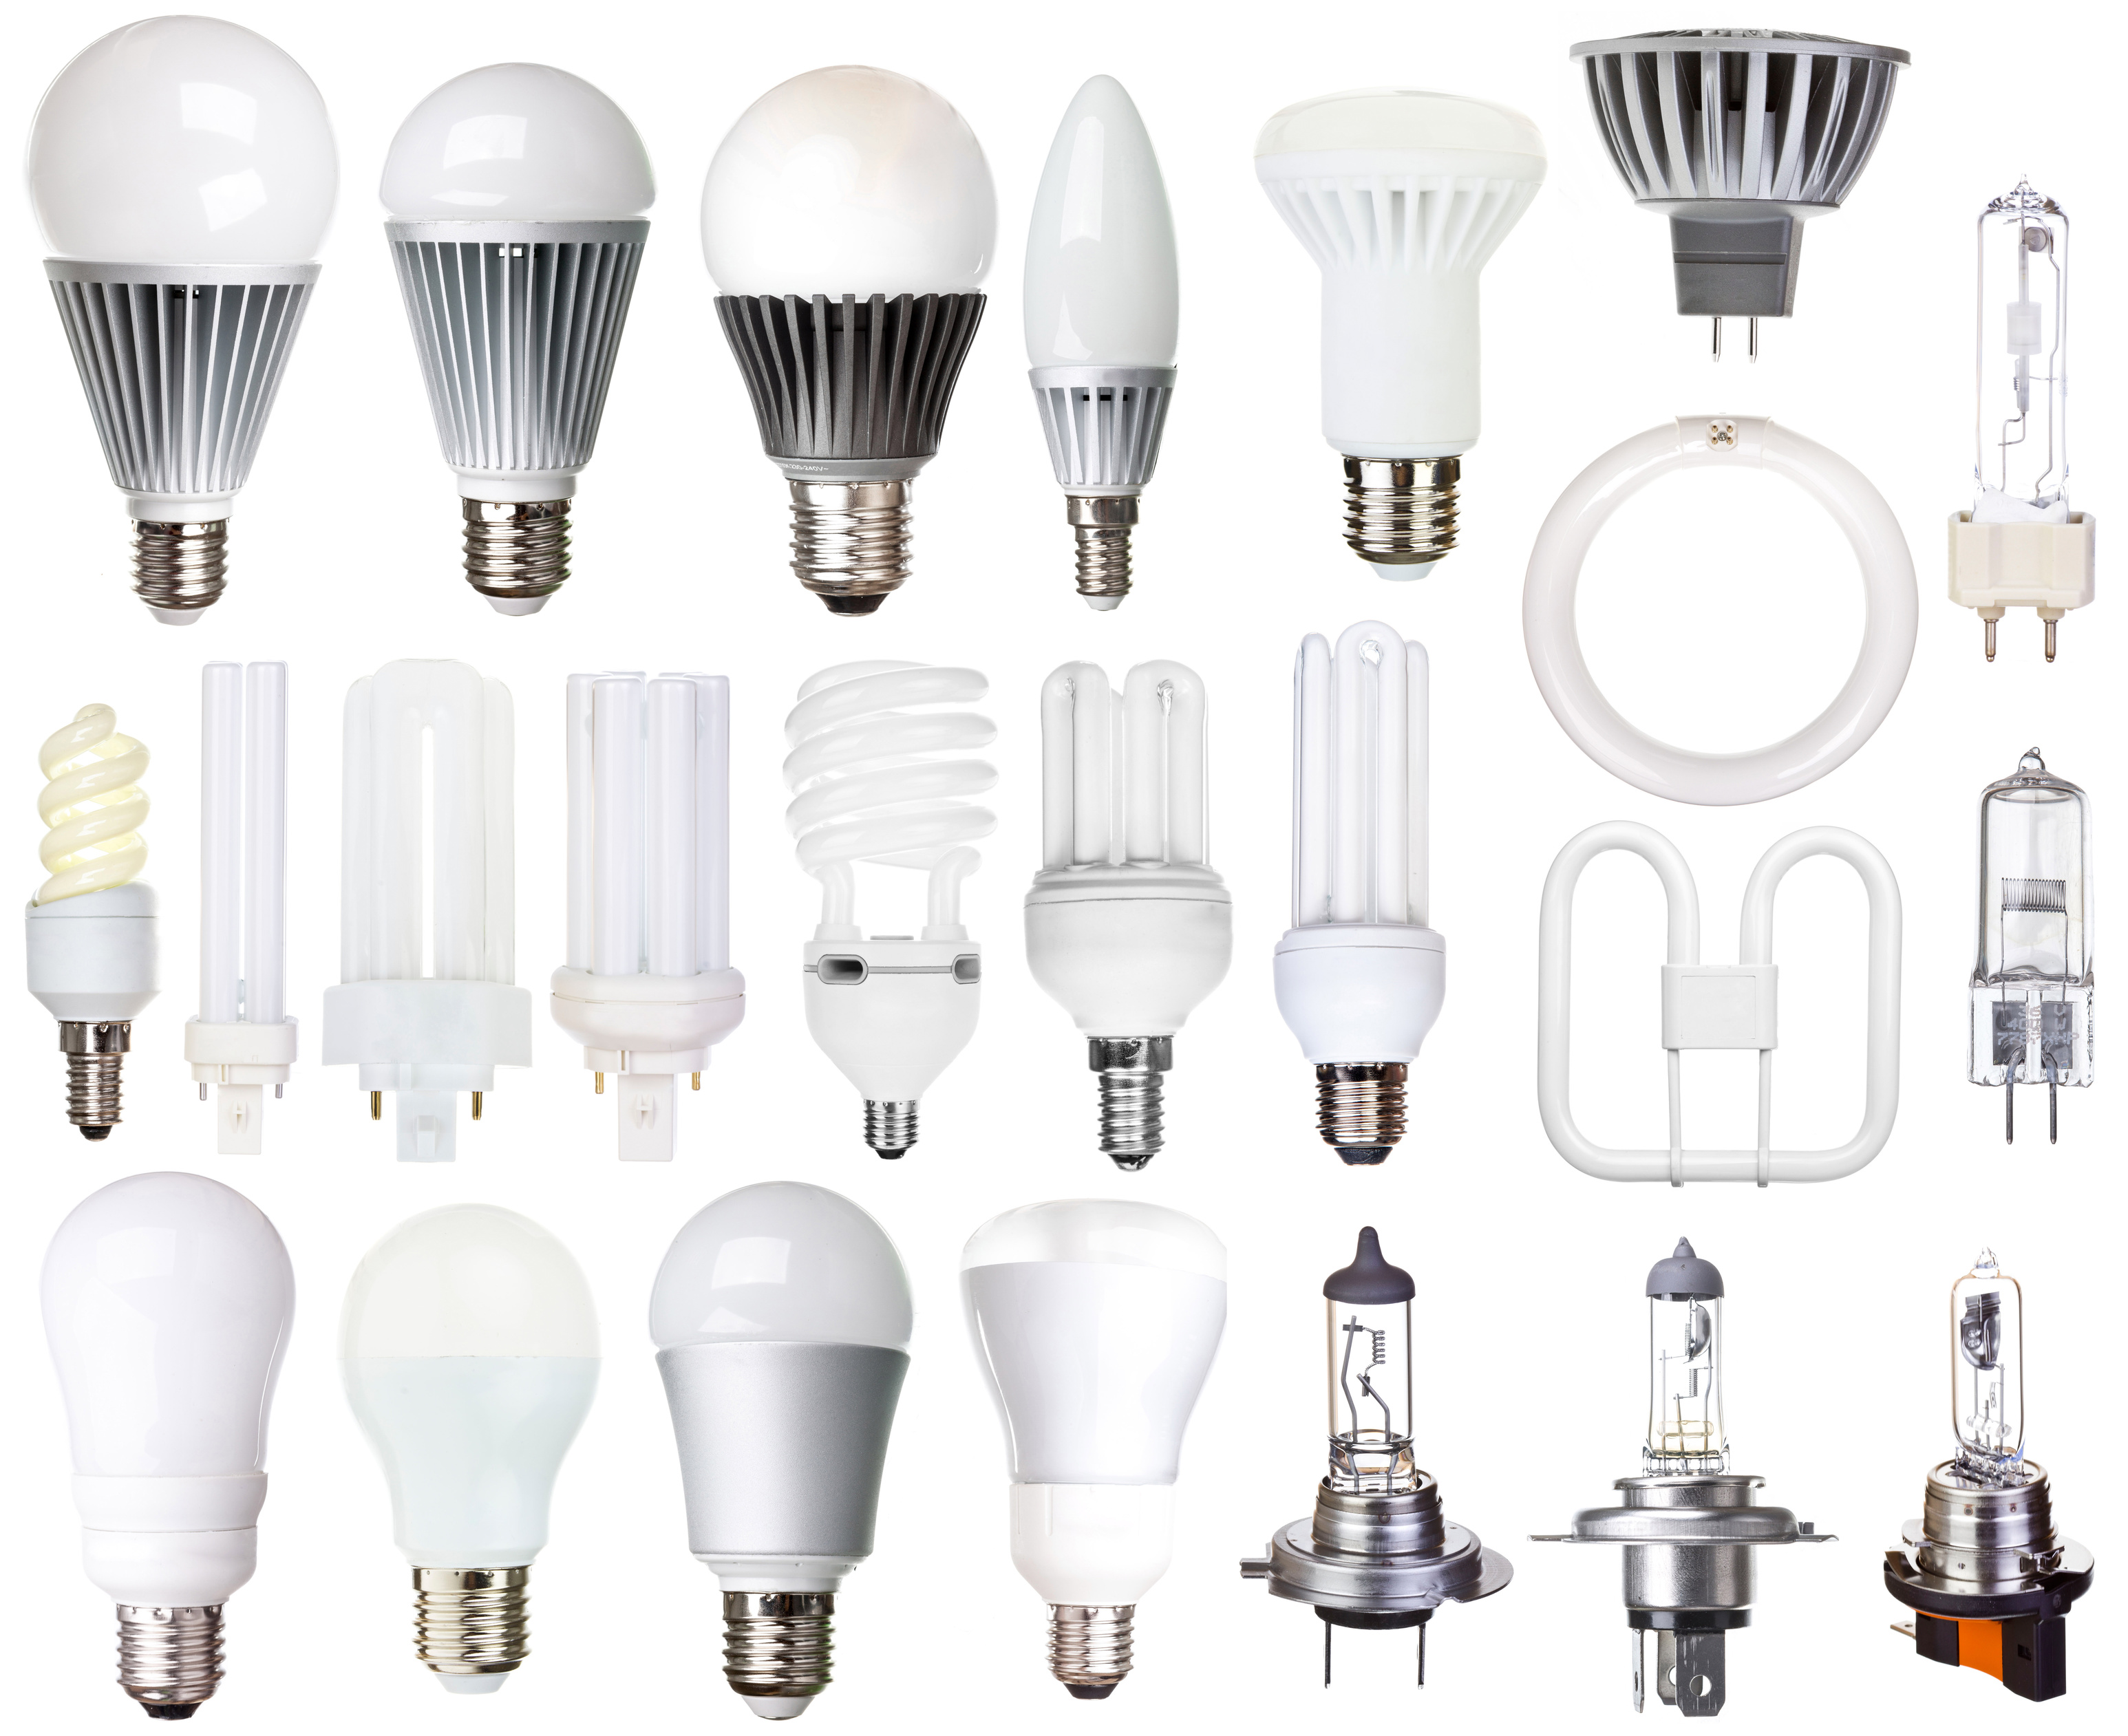 set of bulbs isolated on white background, halogen, LED light